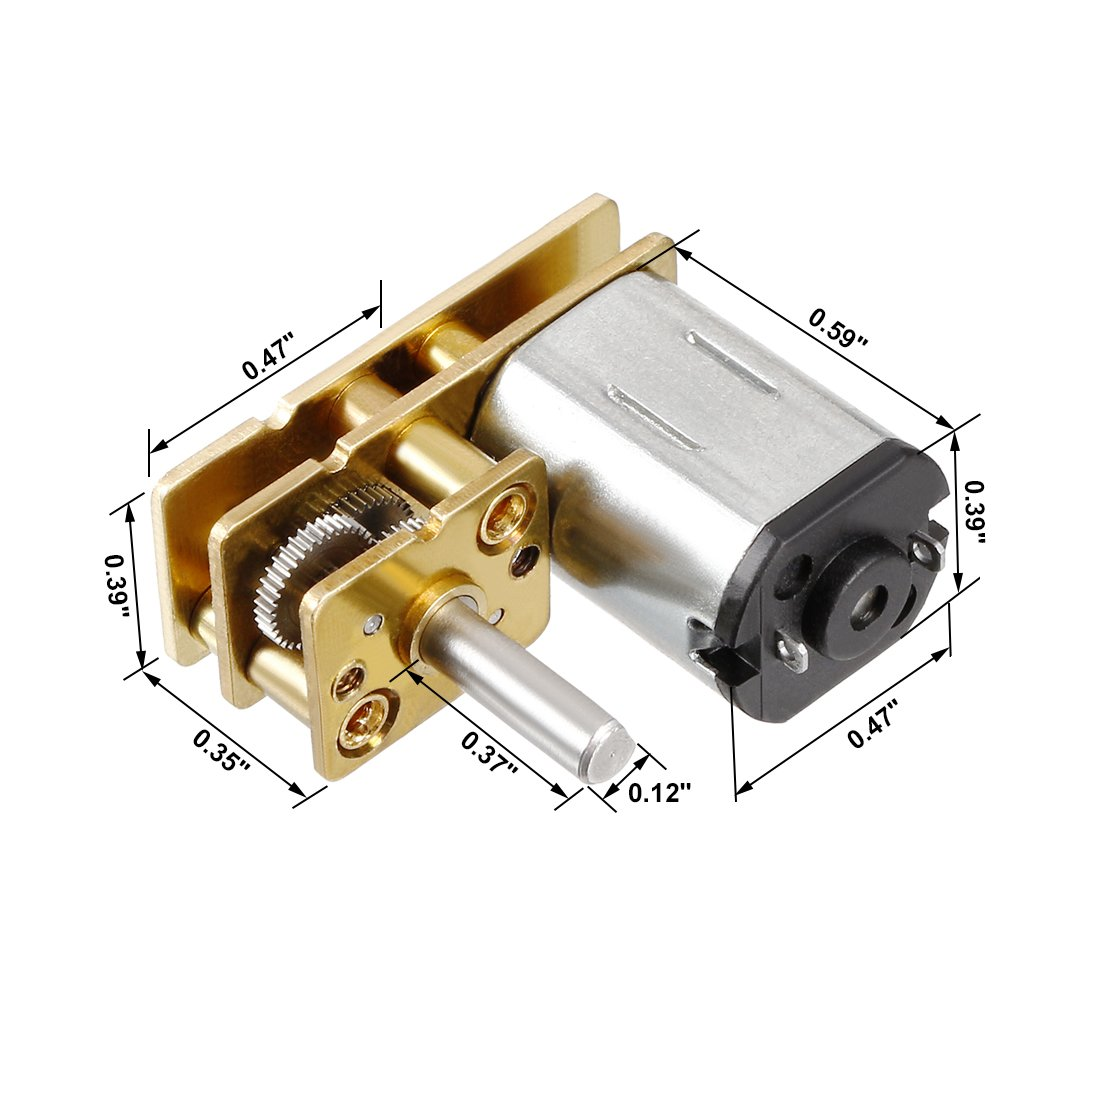 uxcell Micro Gear Box Speed Reduction Motor DC 3V 15RPM Electric Geared Motor with 2 Terminals 0.4kg.cm 0.15A for DIY Toy